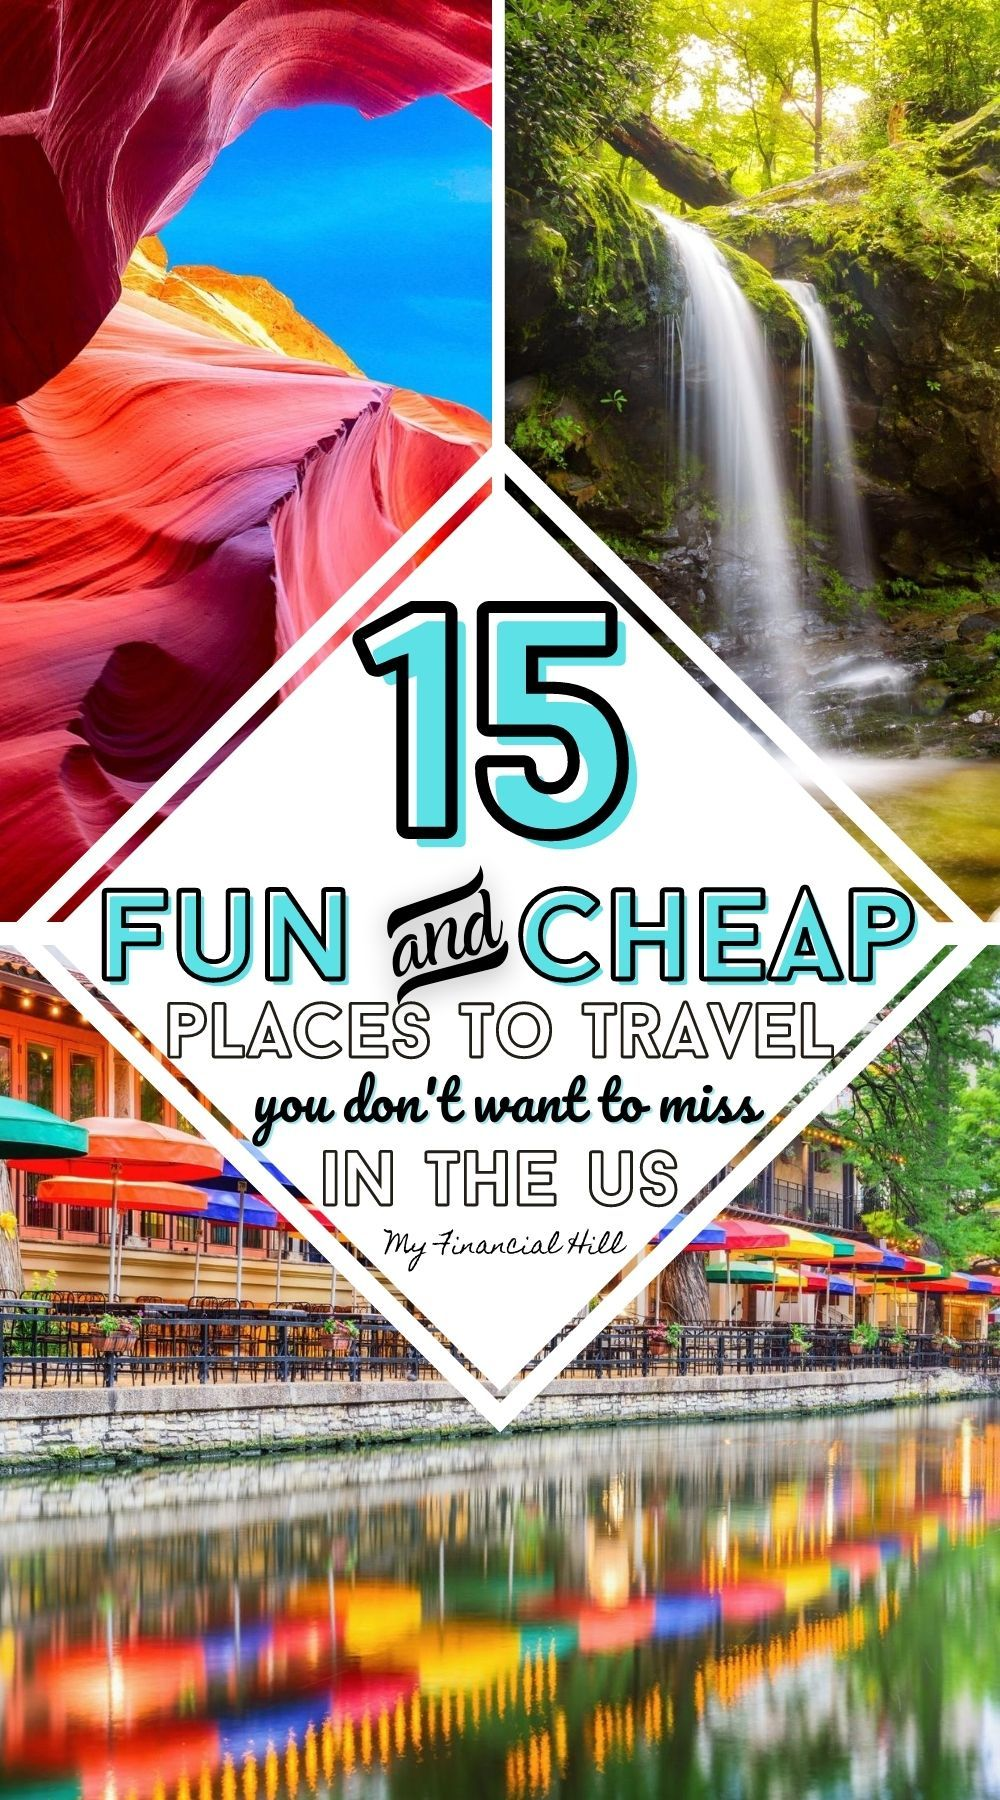 Fun And Cheap Places To Travel In The Us Places To Travel Cheap Places To Travel Travel Fun